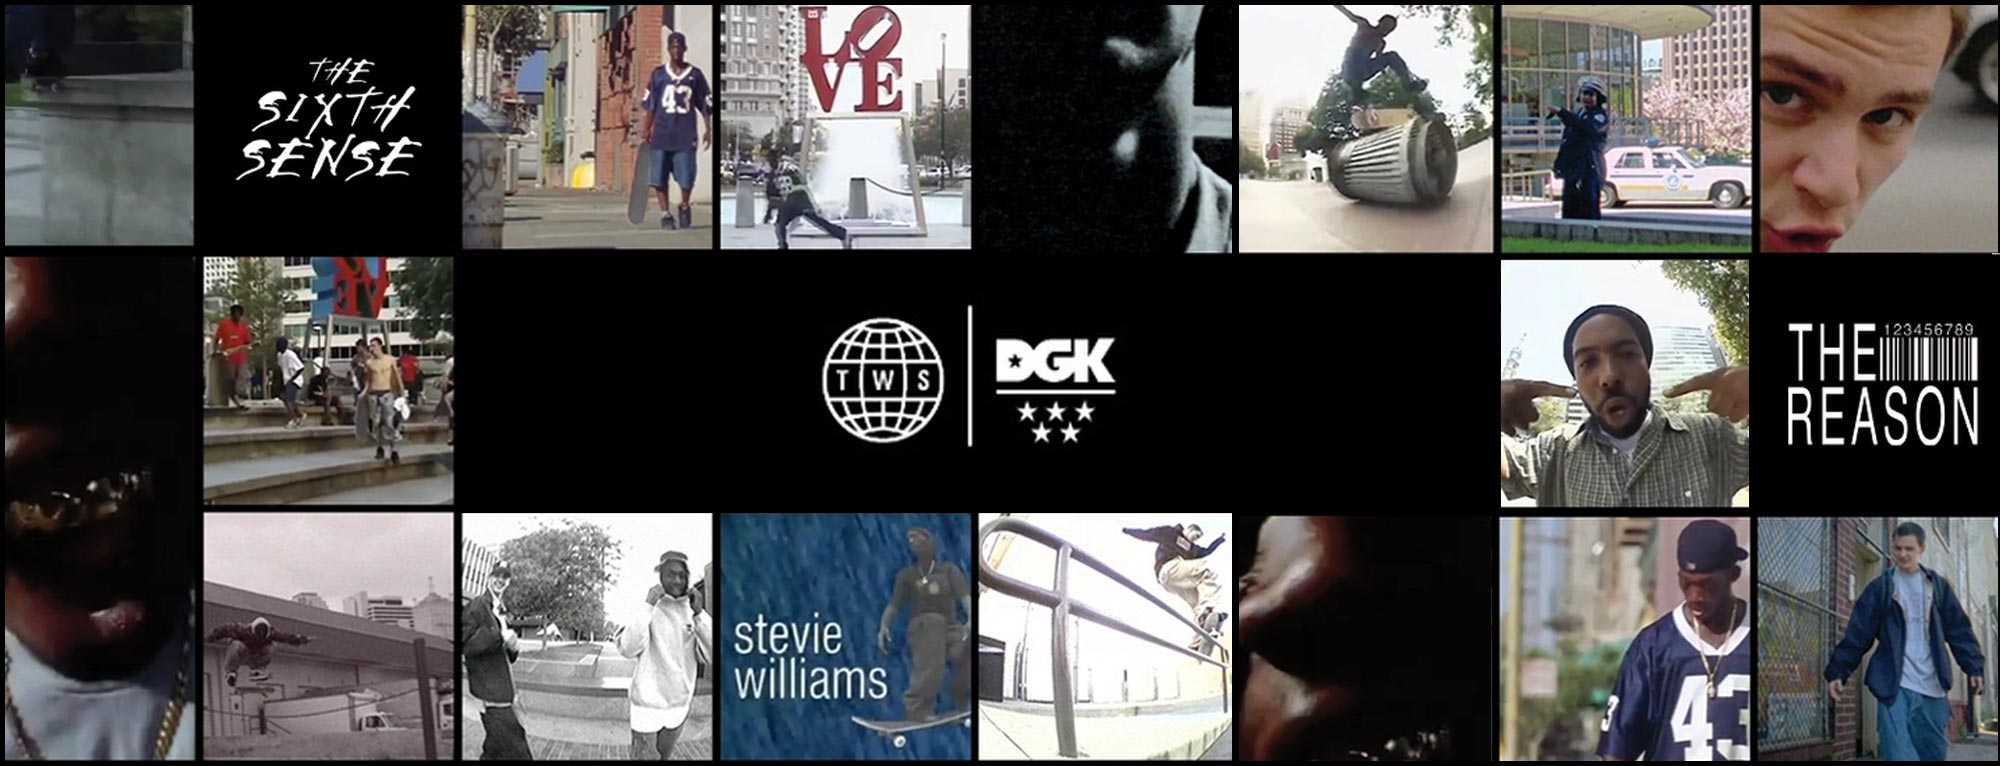 DGK x Transworld Run Skate Chill